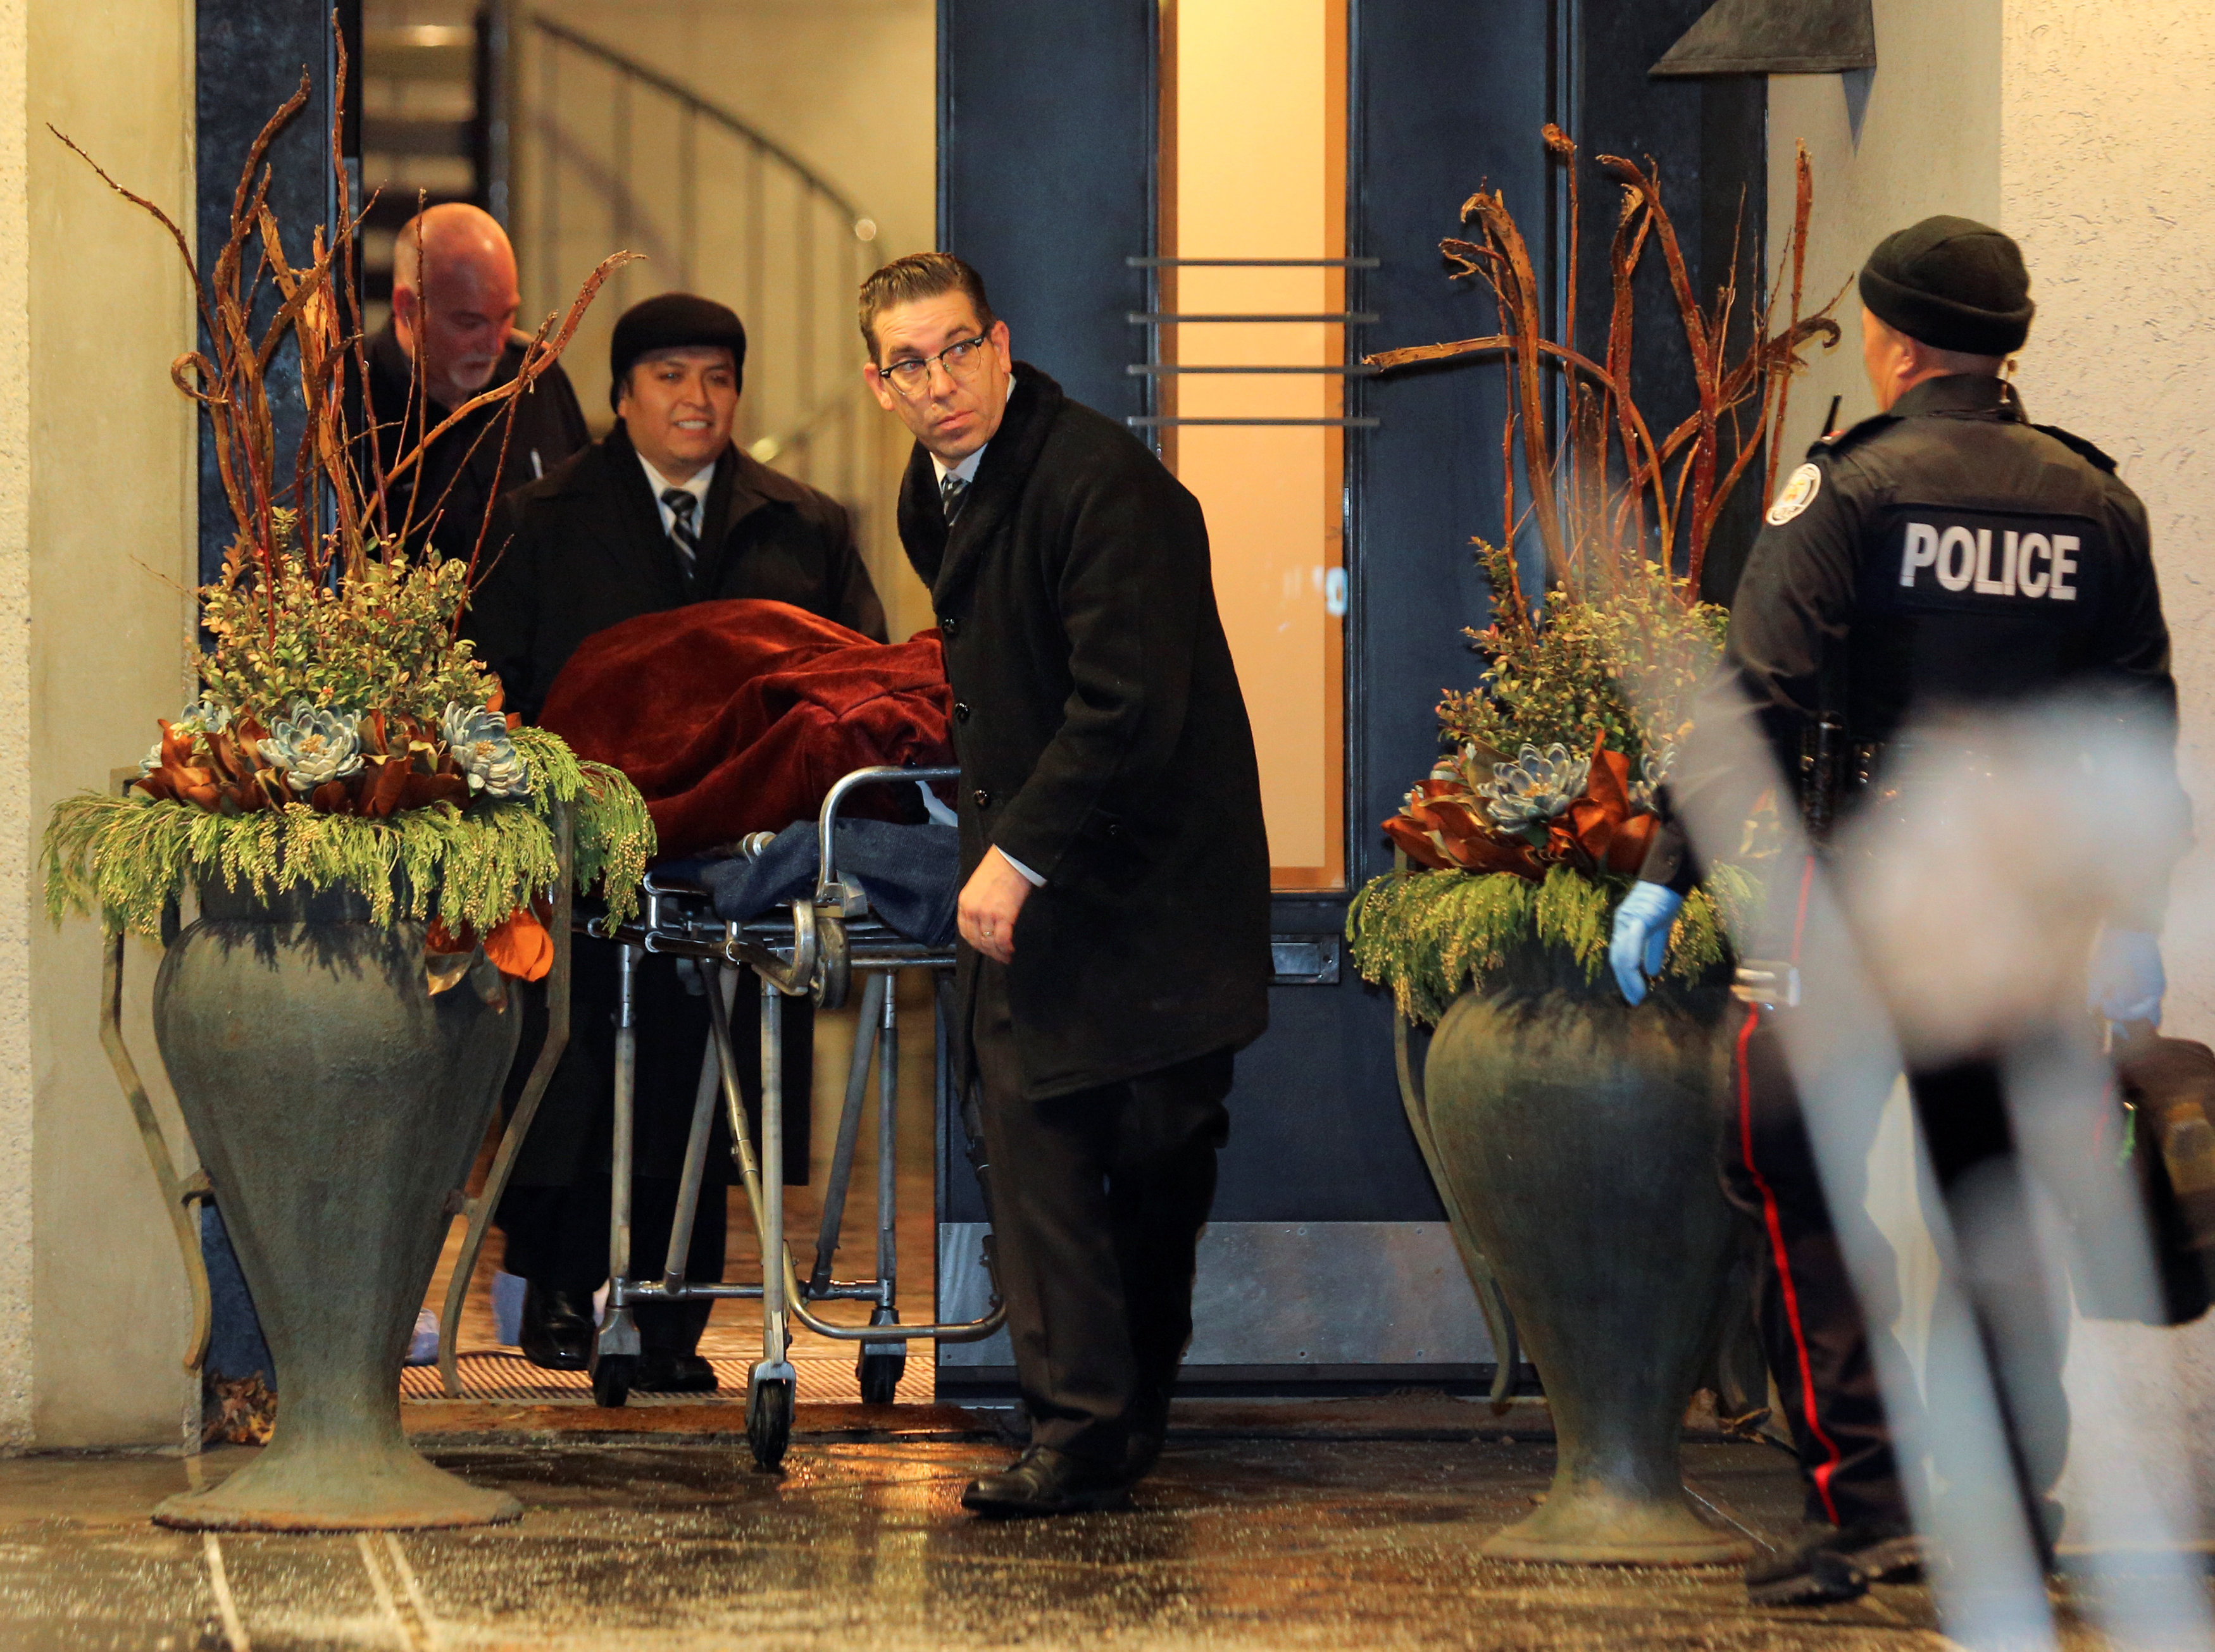 One of two bodies is removed from the home of billionaire founder of Canadian pharmaceutical firm Apotex Inc., Barry Sherman and his wife Honey, who were found dead under circumstances that police described as suspicious in Toronto, Ontario, Canada, December 15, 2017